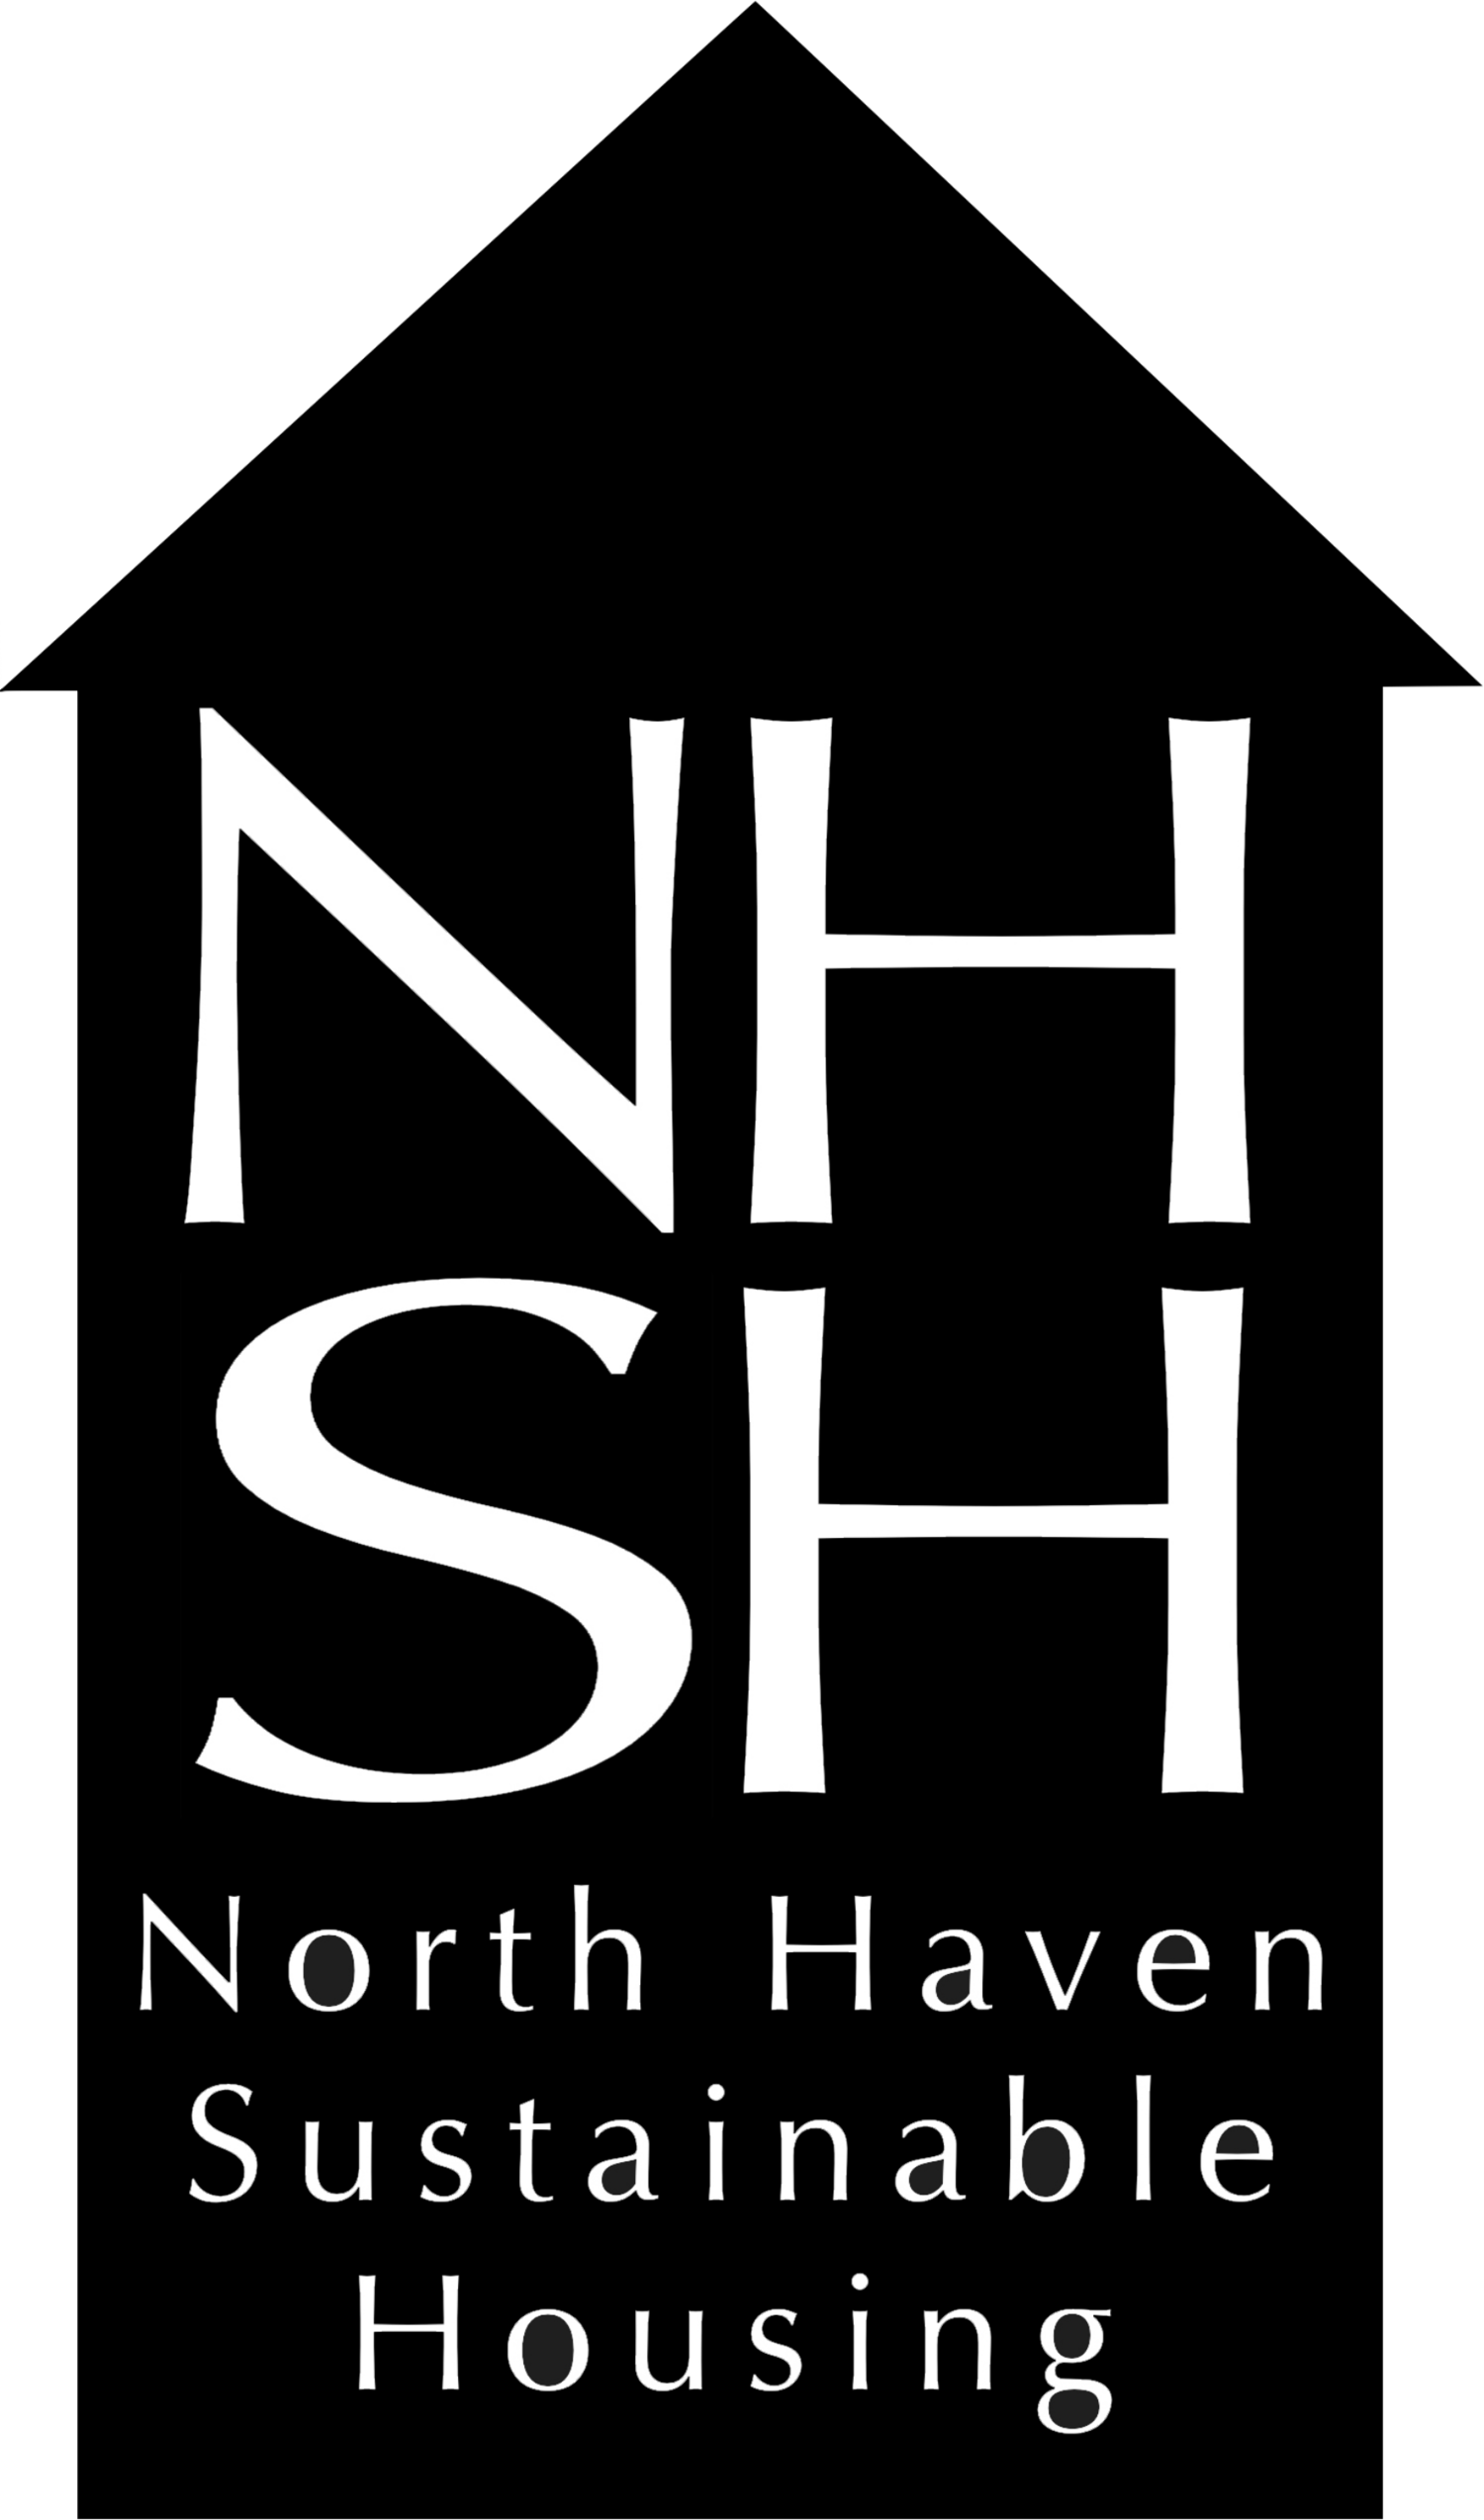 North Haven Sustainable Housing